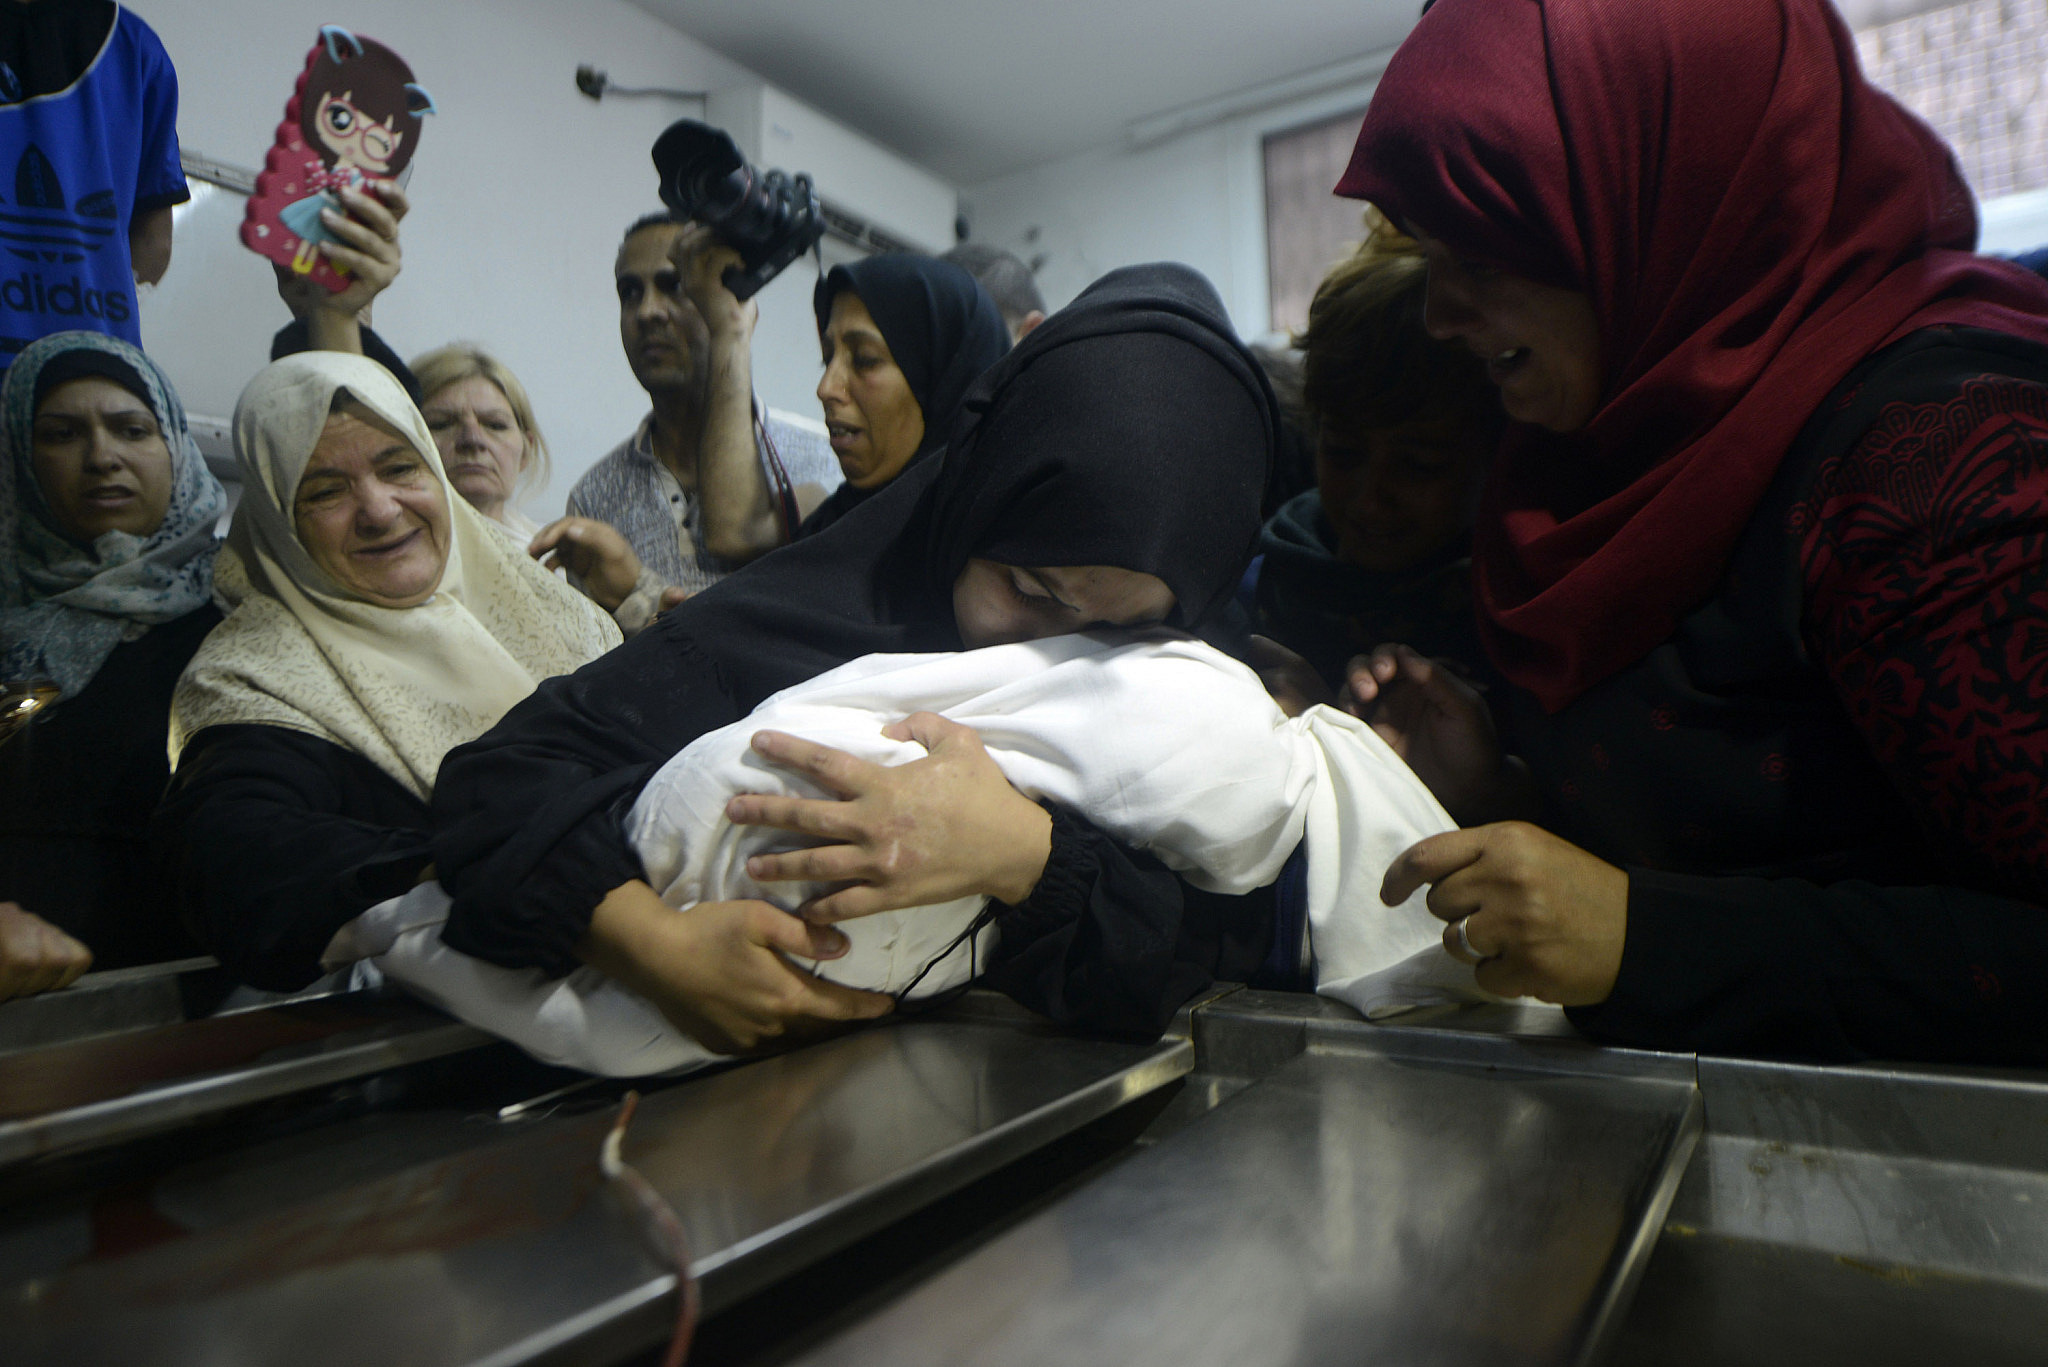 Palestinian women mourn those killed in clashes between Israeli soldiers and protesters during the Great Return March, May 14, 2018. (Mohammed Zaanoun/Activestills.org)